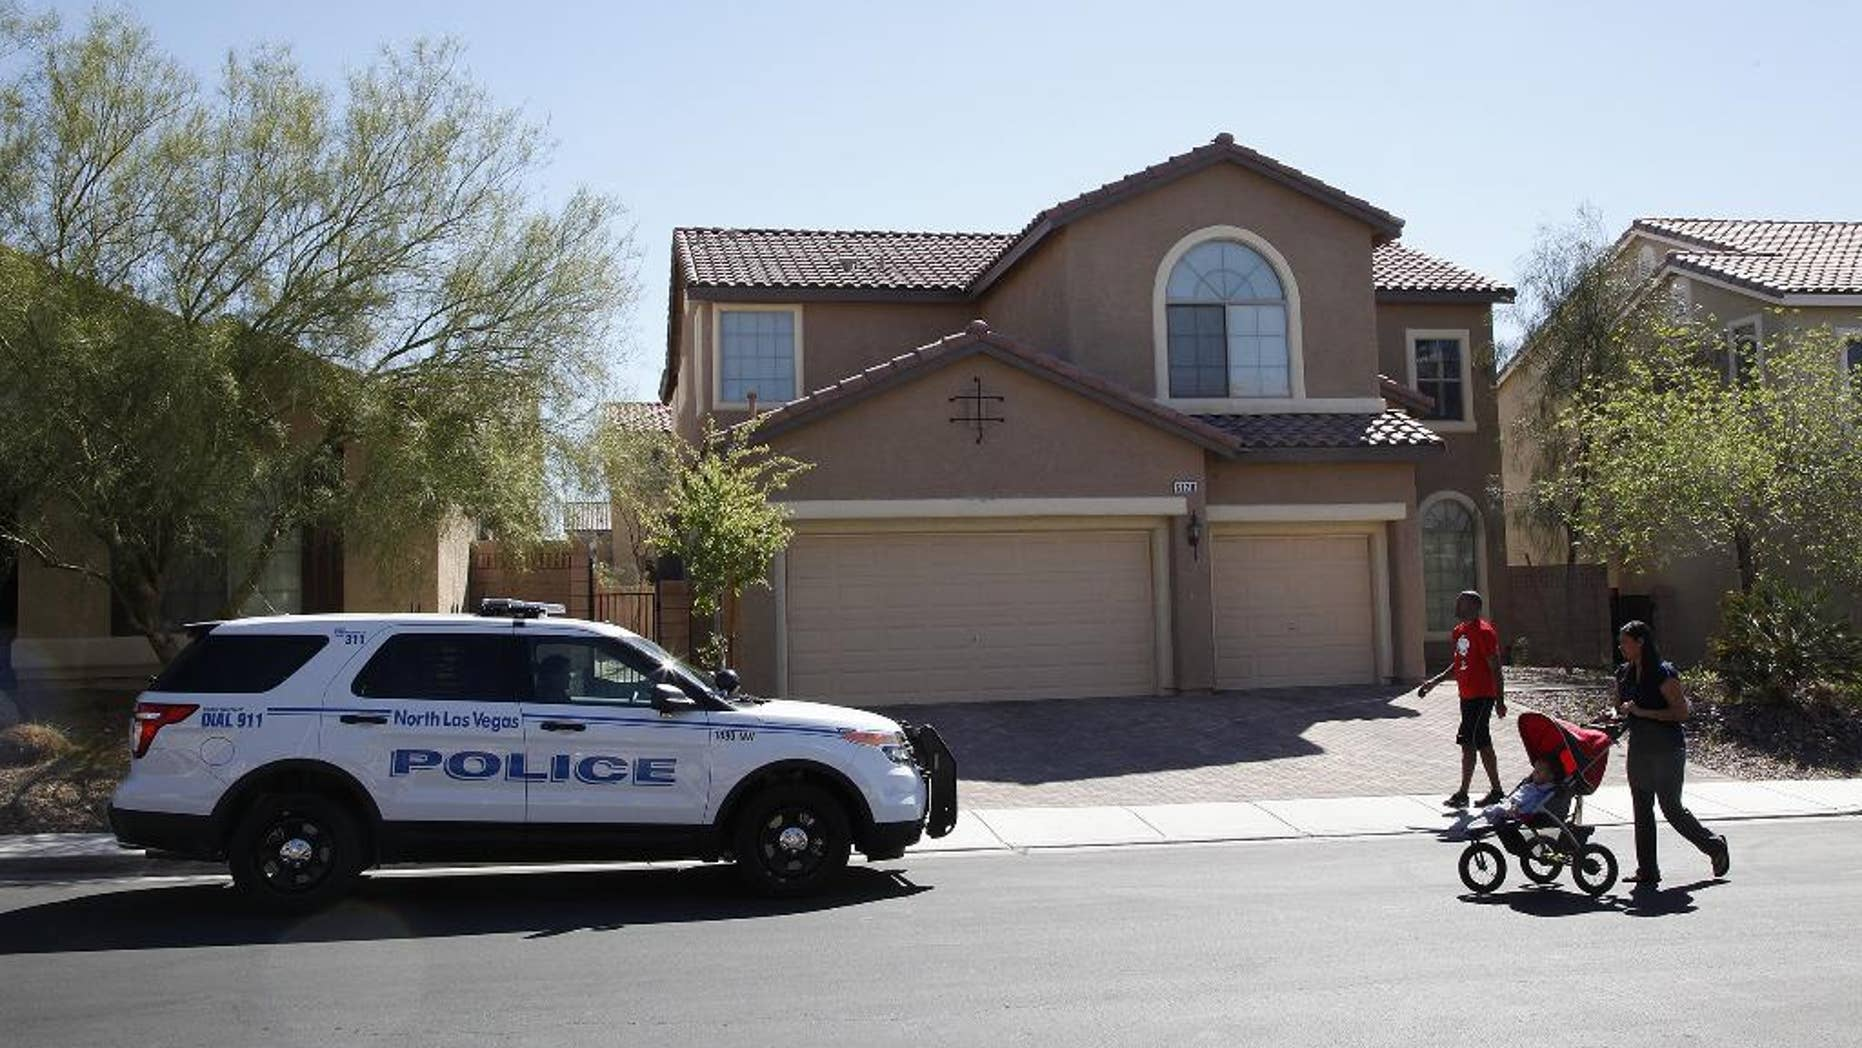 Sheldon Jacobs and his wife Nicole Jacobs walk in front of a home on the 6100 block of Stibor Street in North Las Vegas on Tuesday, April 1, 2014. Police in North Las Vegas think a family member may be responsible for a double-slaying at this home where officers sent to check on a missing 53-year-old mother and her 33-year-old daughter found a bloody crime scene. (AP Photo/Las Vegas Review-Journal, Justin Yurkanin) LOCAL TV OUT; LOCAL INTERNET OUT; LAS VEGAS SUN OUT